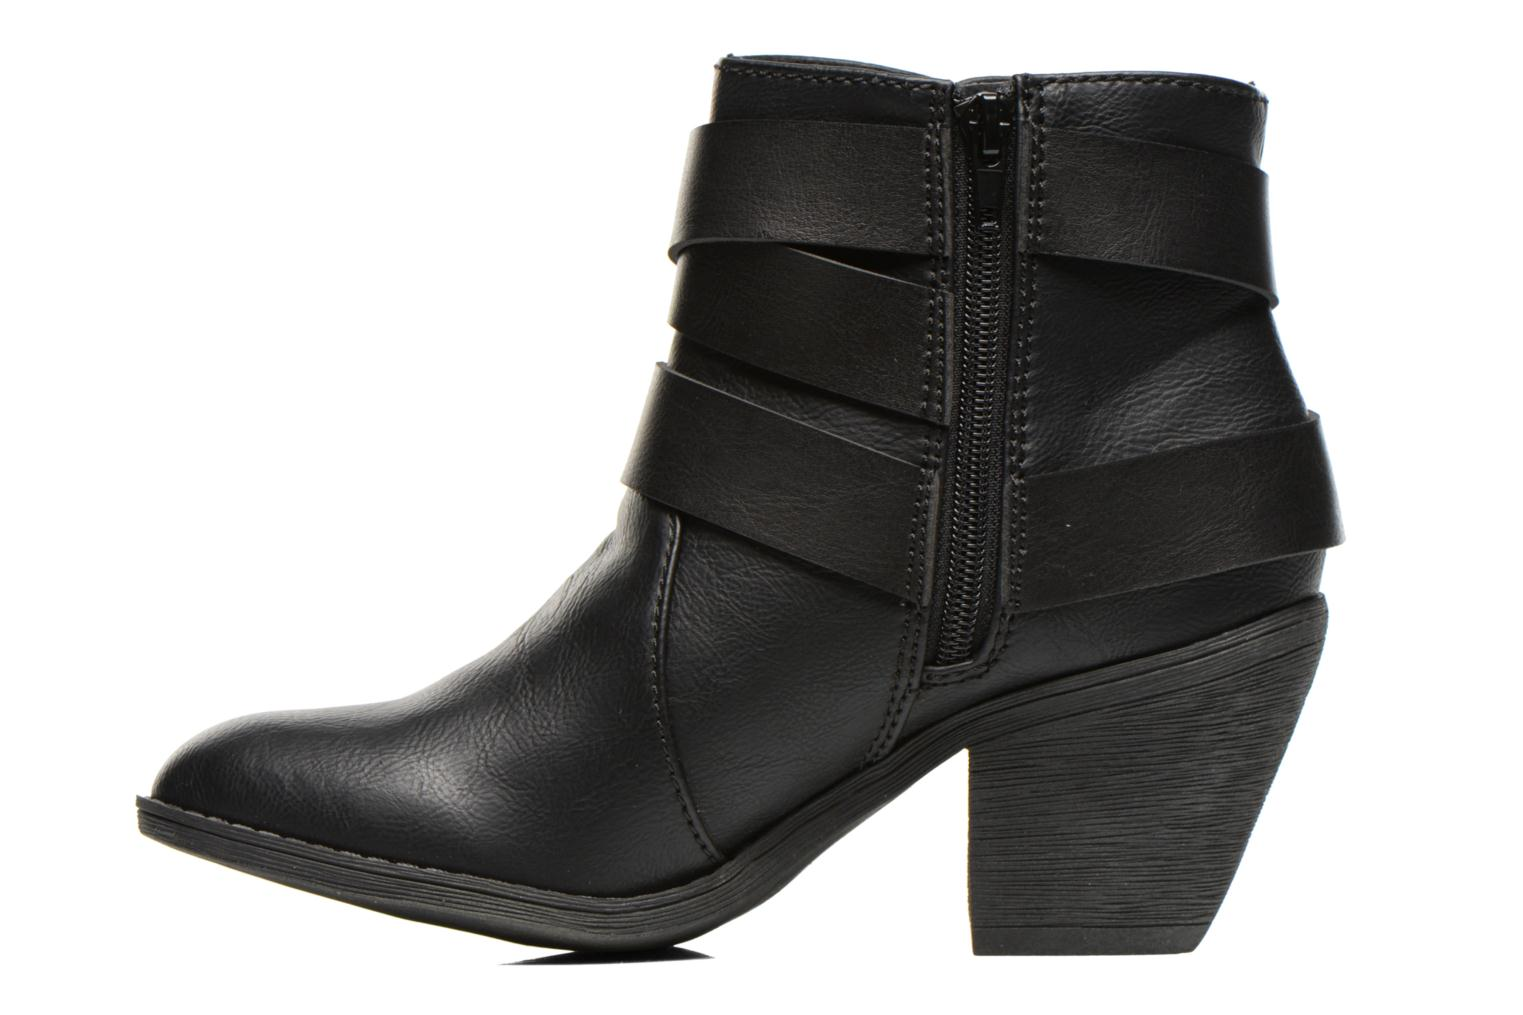 Bottines et boots Blowfish Sworn Noir vue face